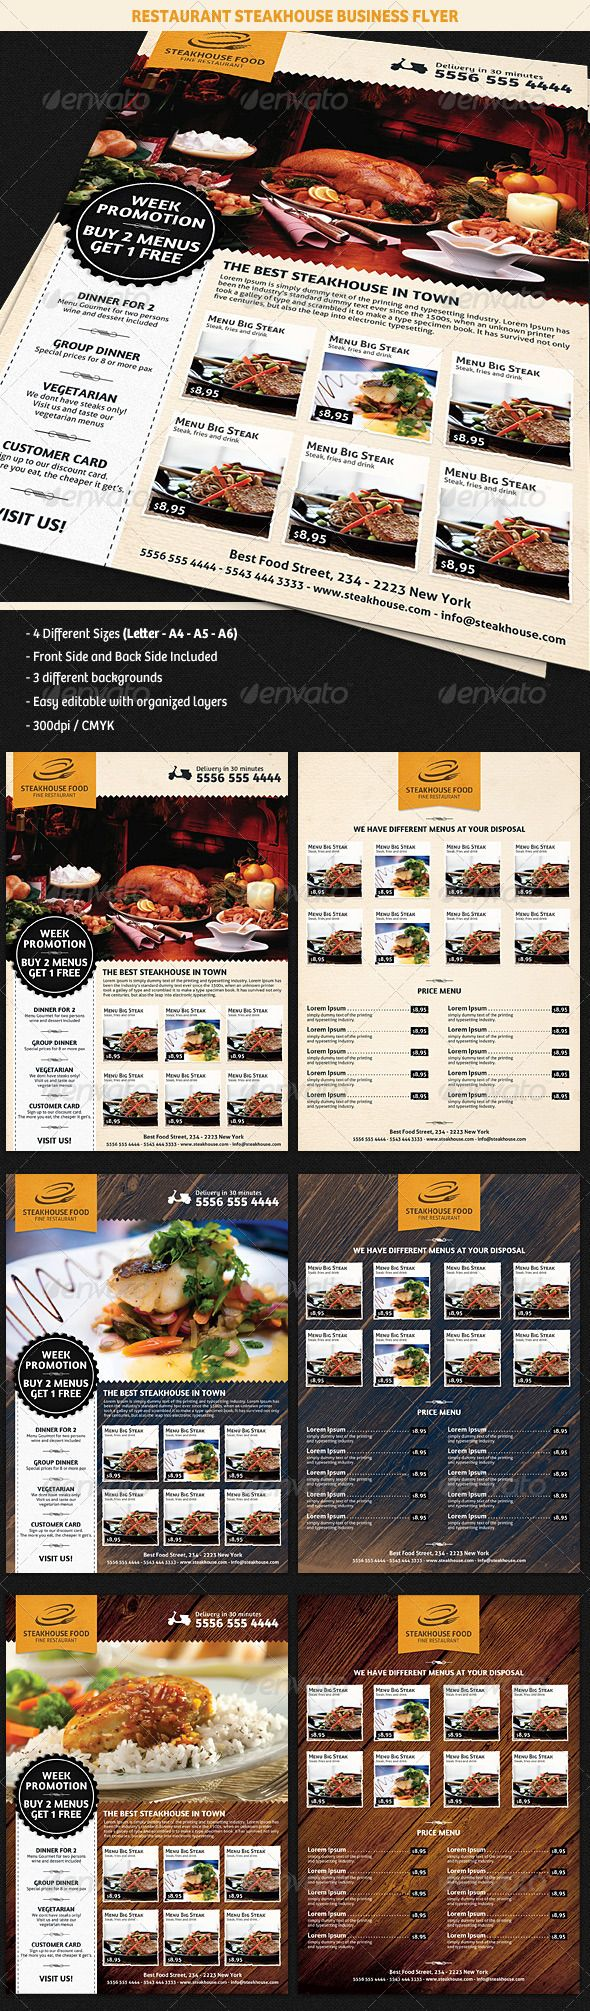 Restaurant SteakHouse Advertising Business Flyer  #GraphicRiver        Description A nice and traditional looking